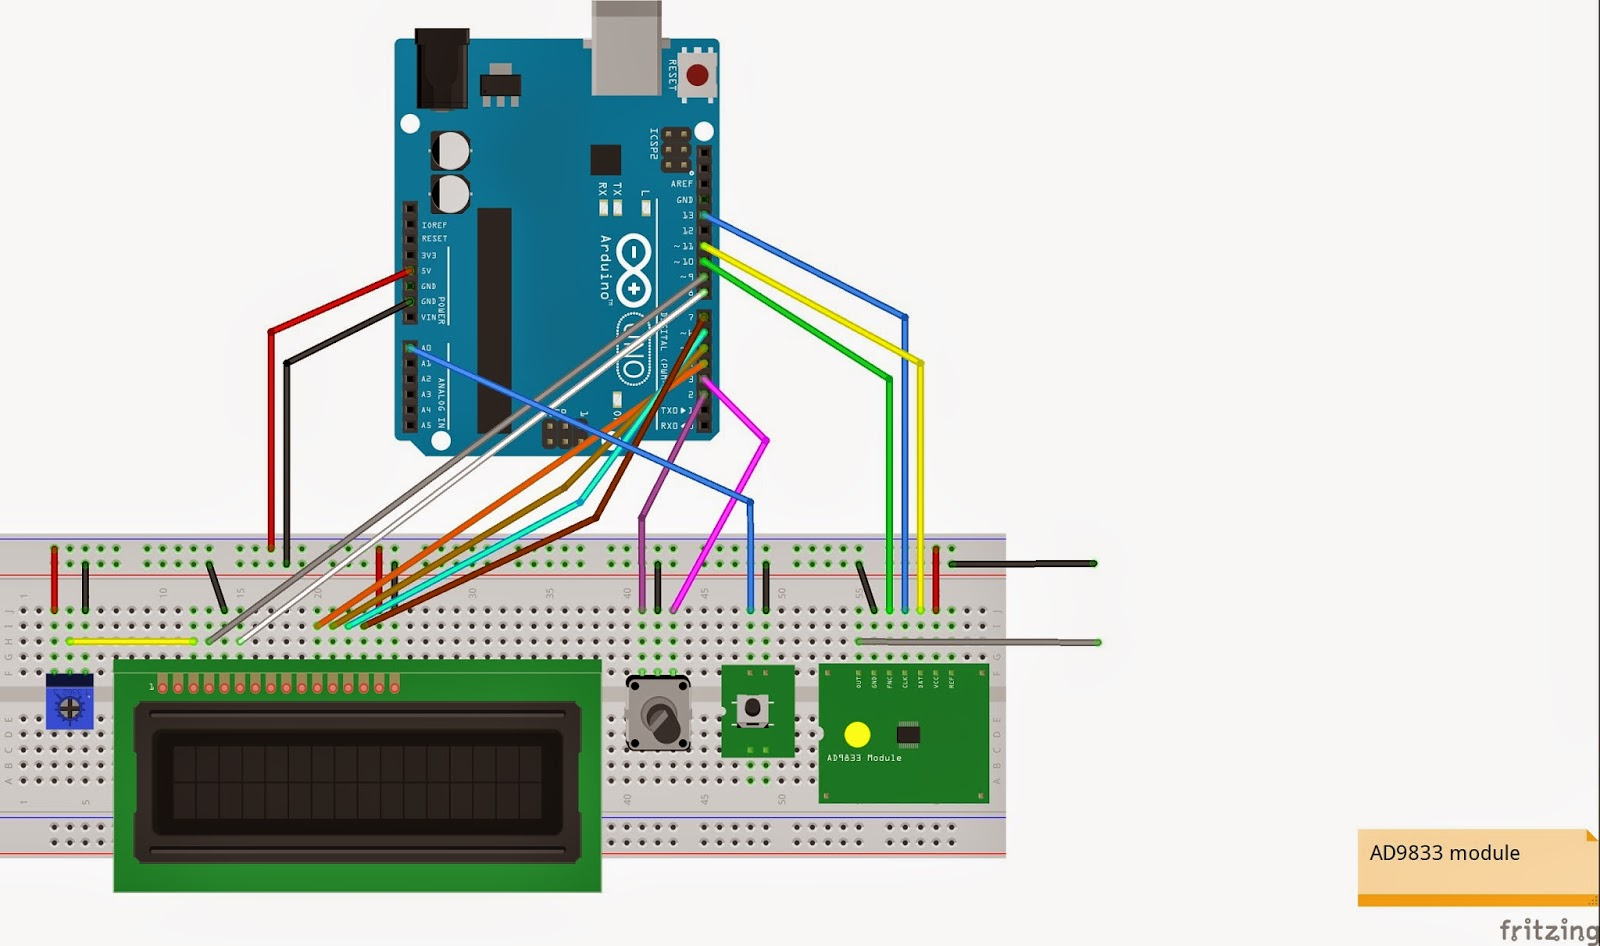 Arduino Wiring Diagram Lawn Mower - getting ready with wiring diagram